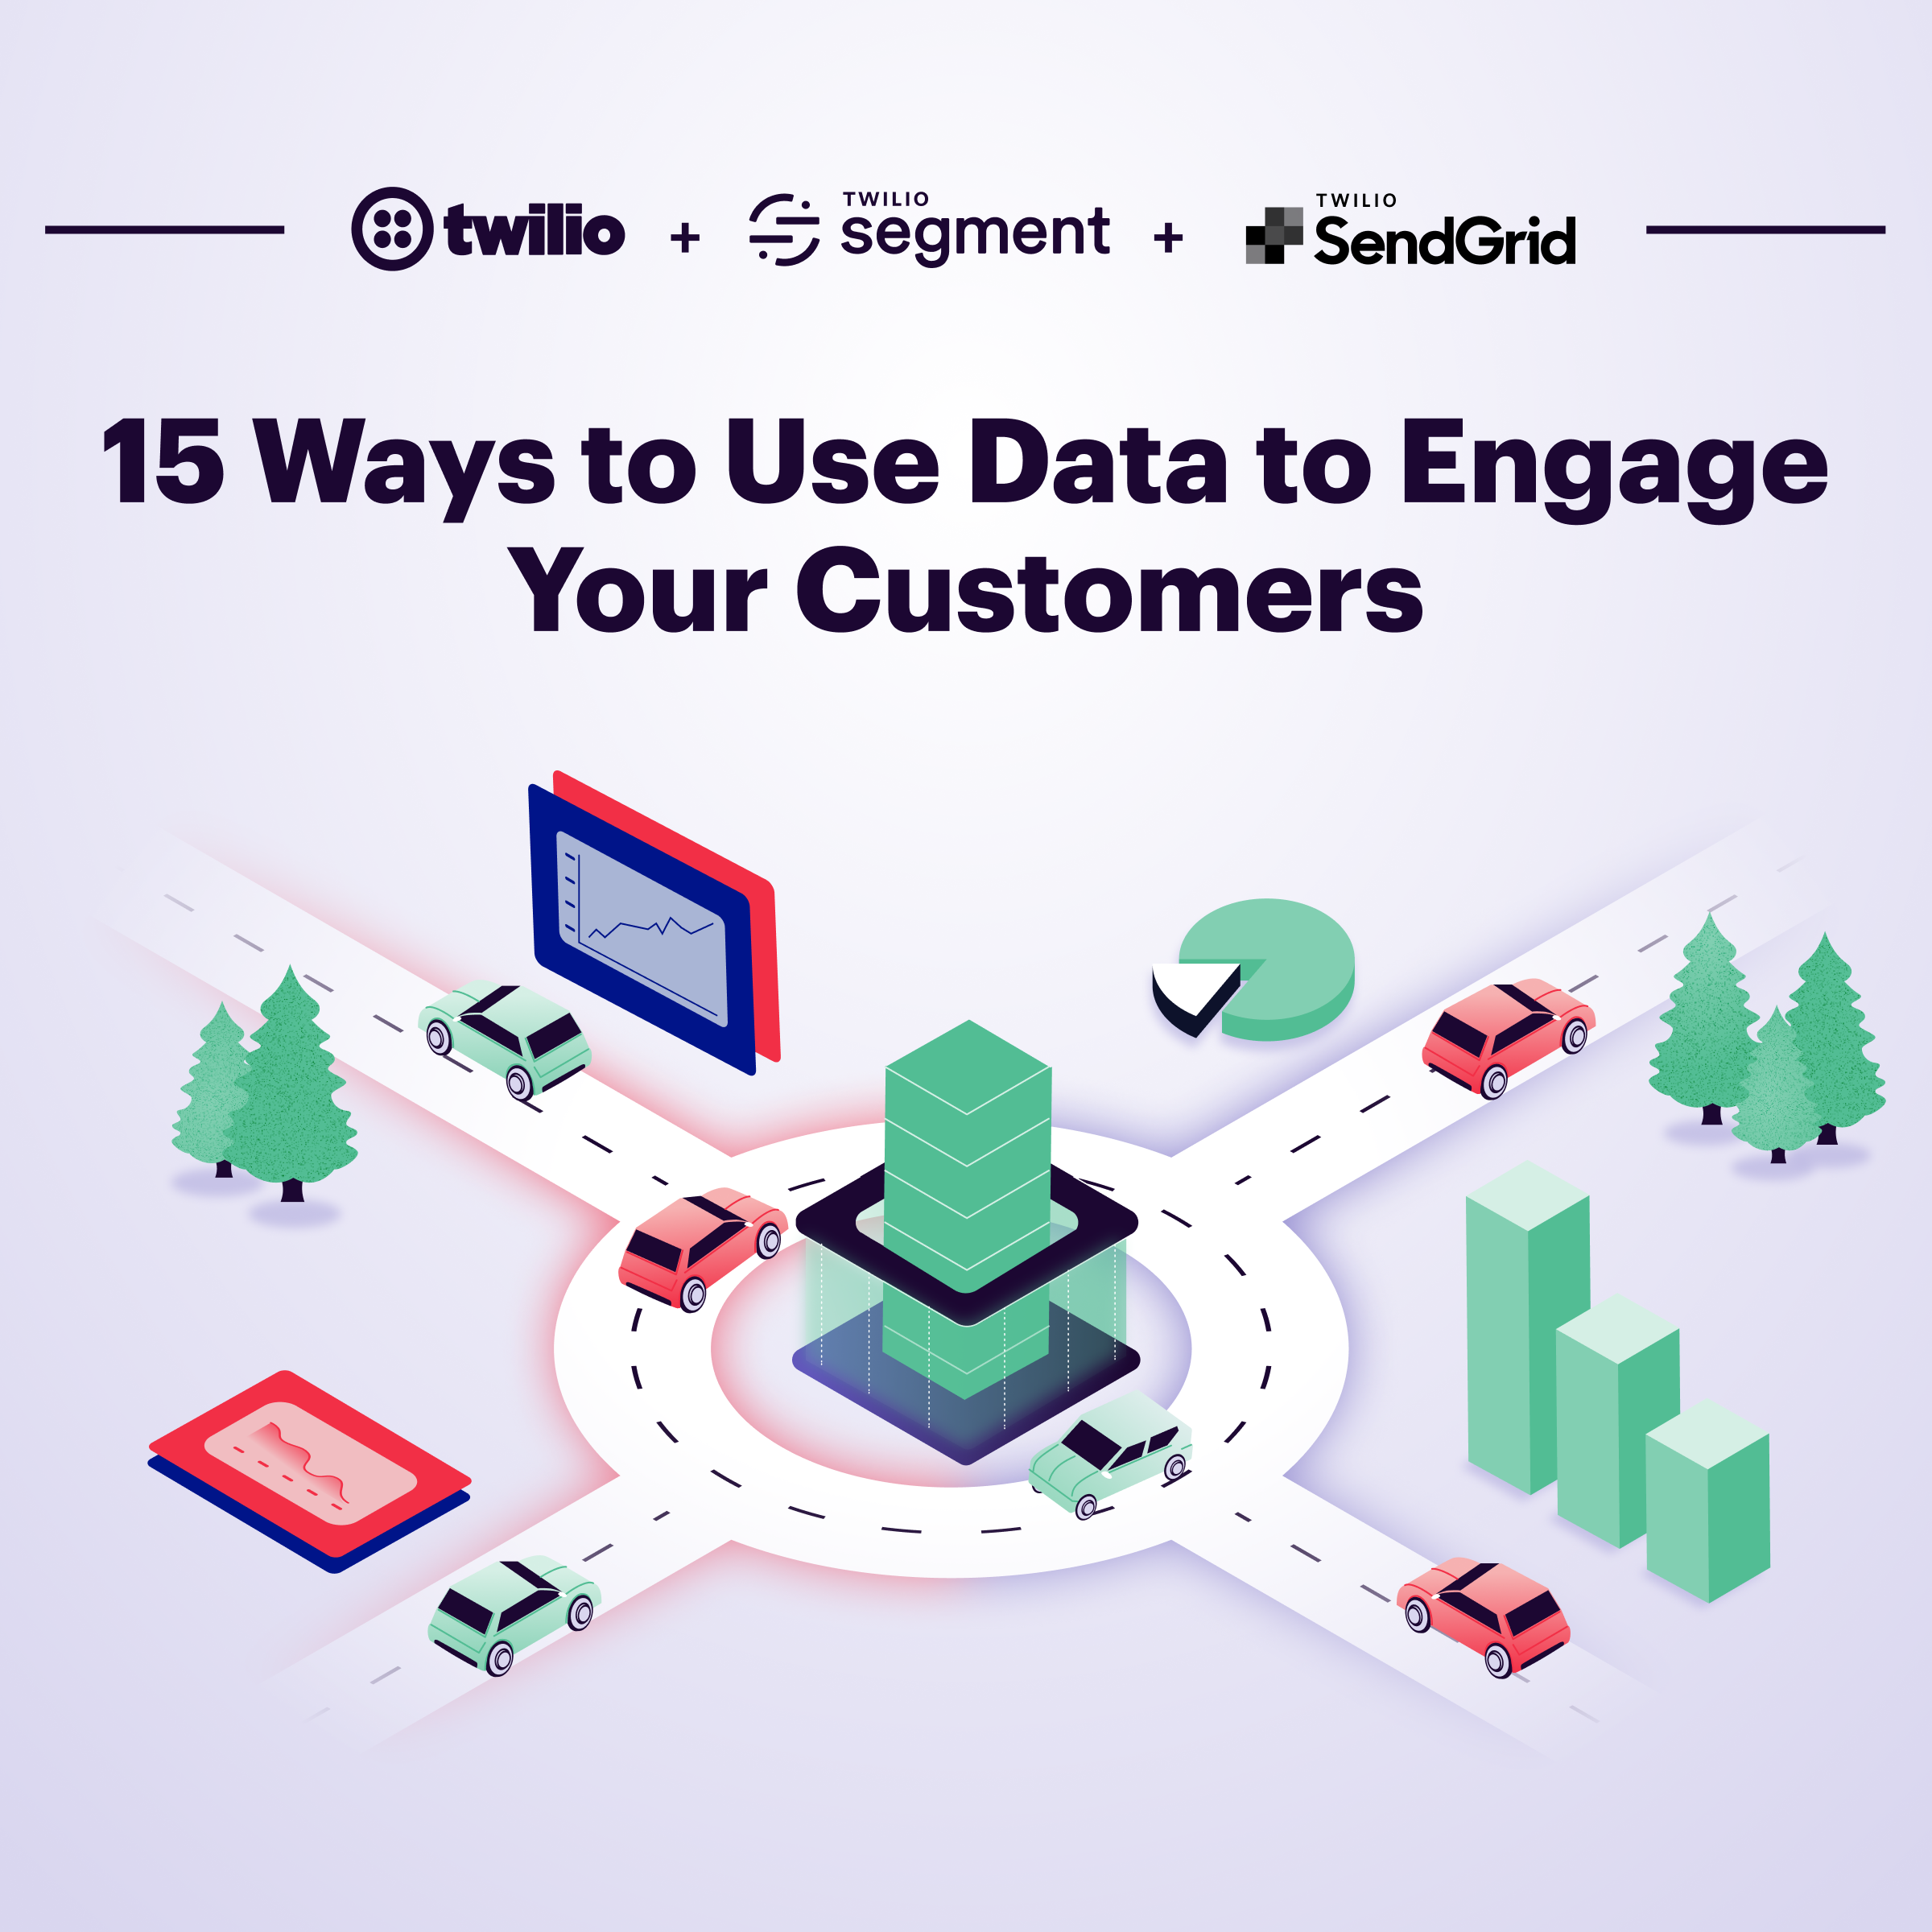 15 ways to use data to engage your customers